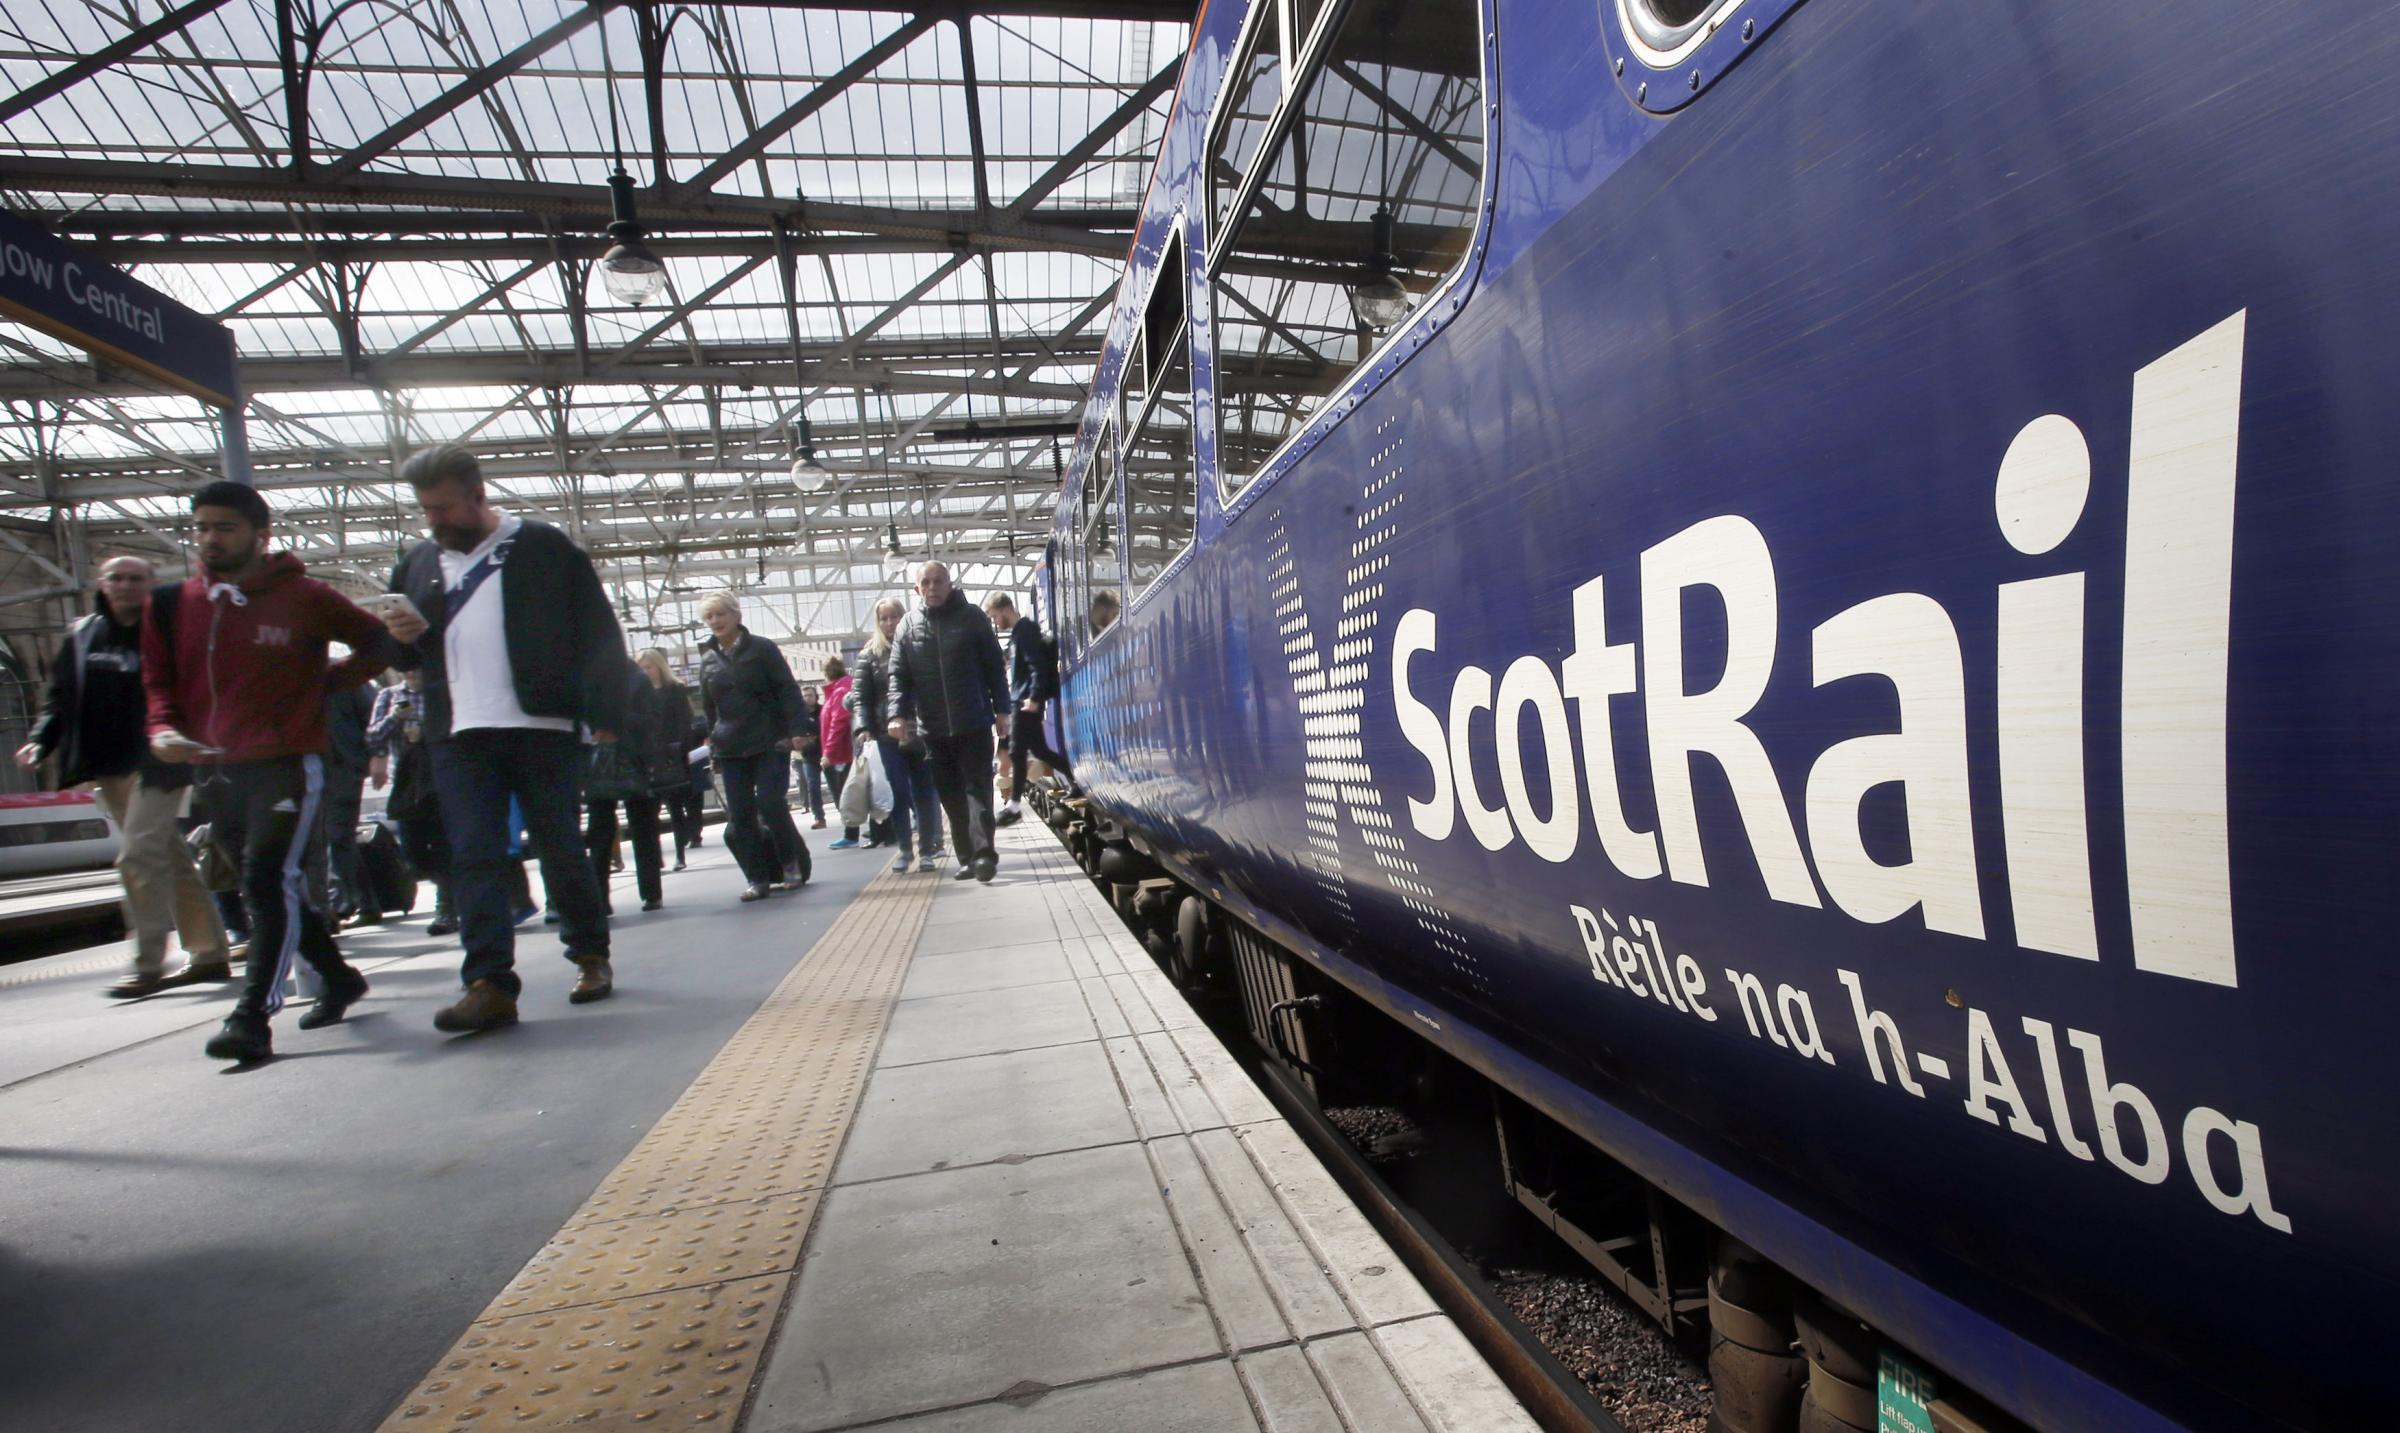 Extra late night trains between Glasgow and Edinburgh set to run over festive season